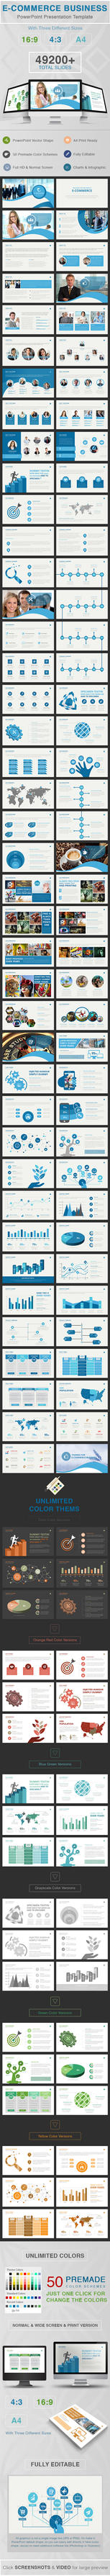 E-Commerce Business Powerpoint by dotnpix